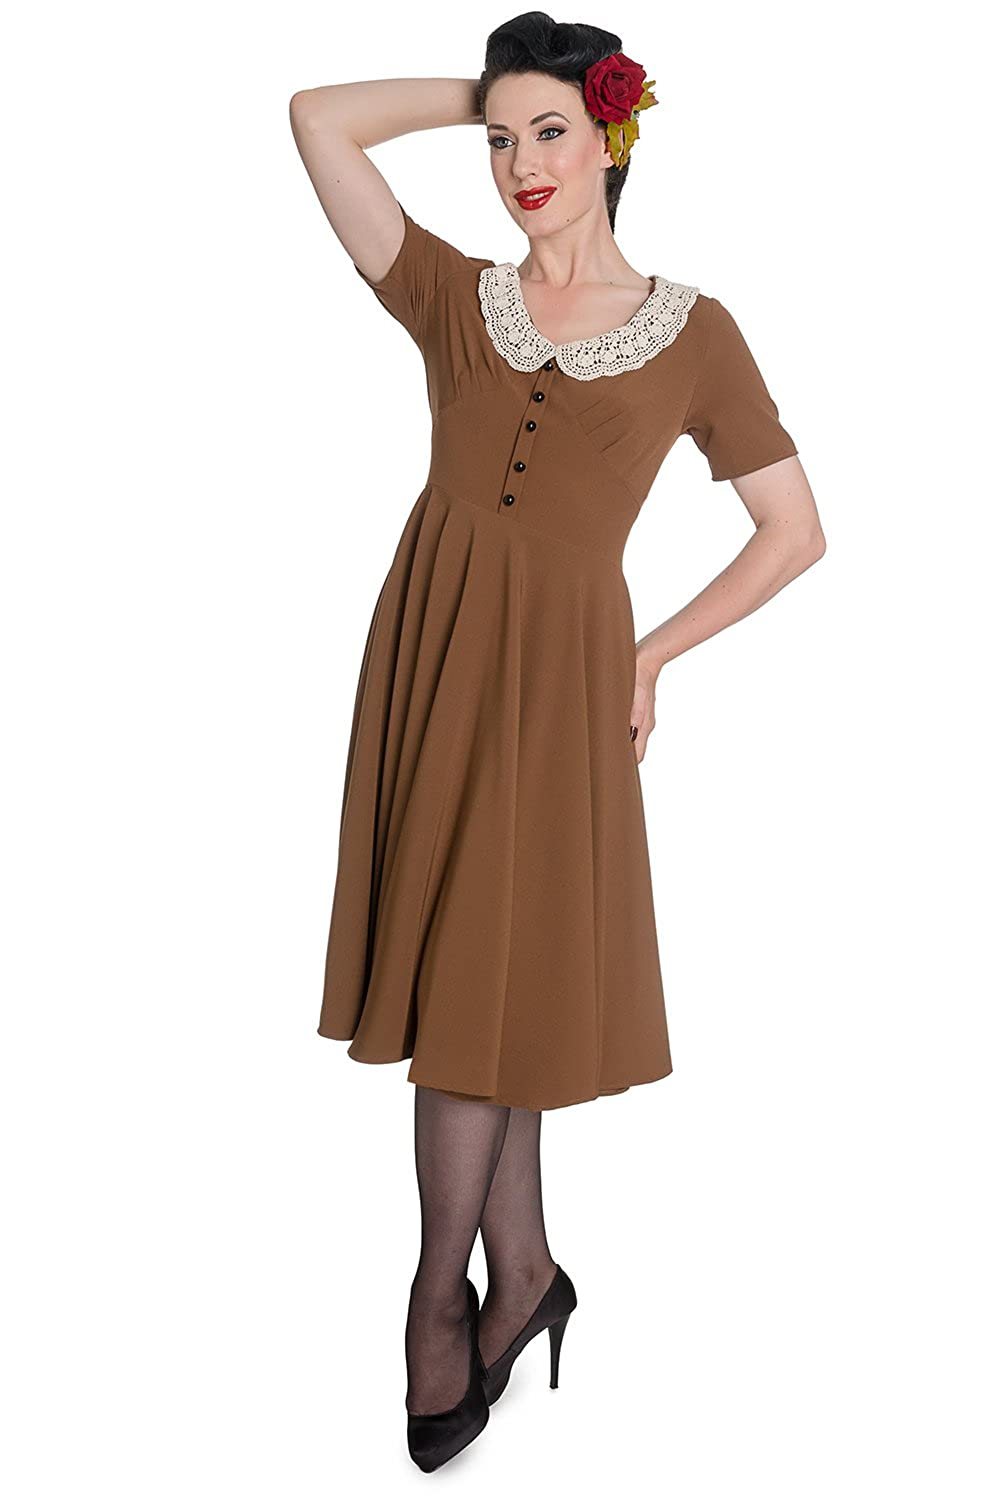 1940s Style Dresses and Clothing 30 40s Hell Bunny Juliana Retro Rockabilly Landgirl Dress $34.99 AT vintagedancer.com